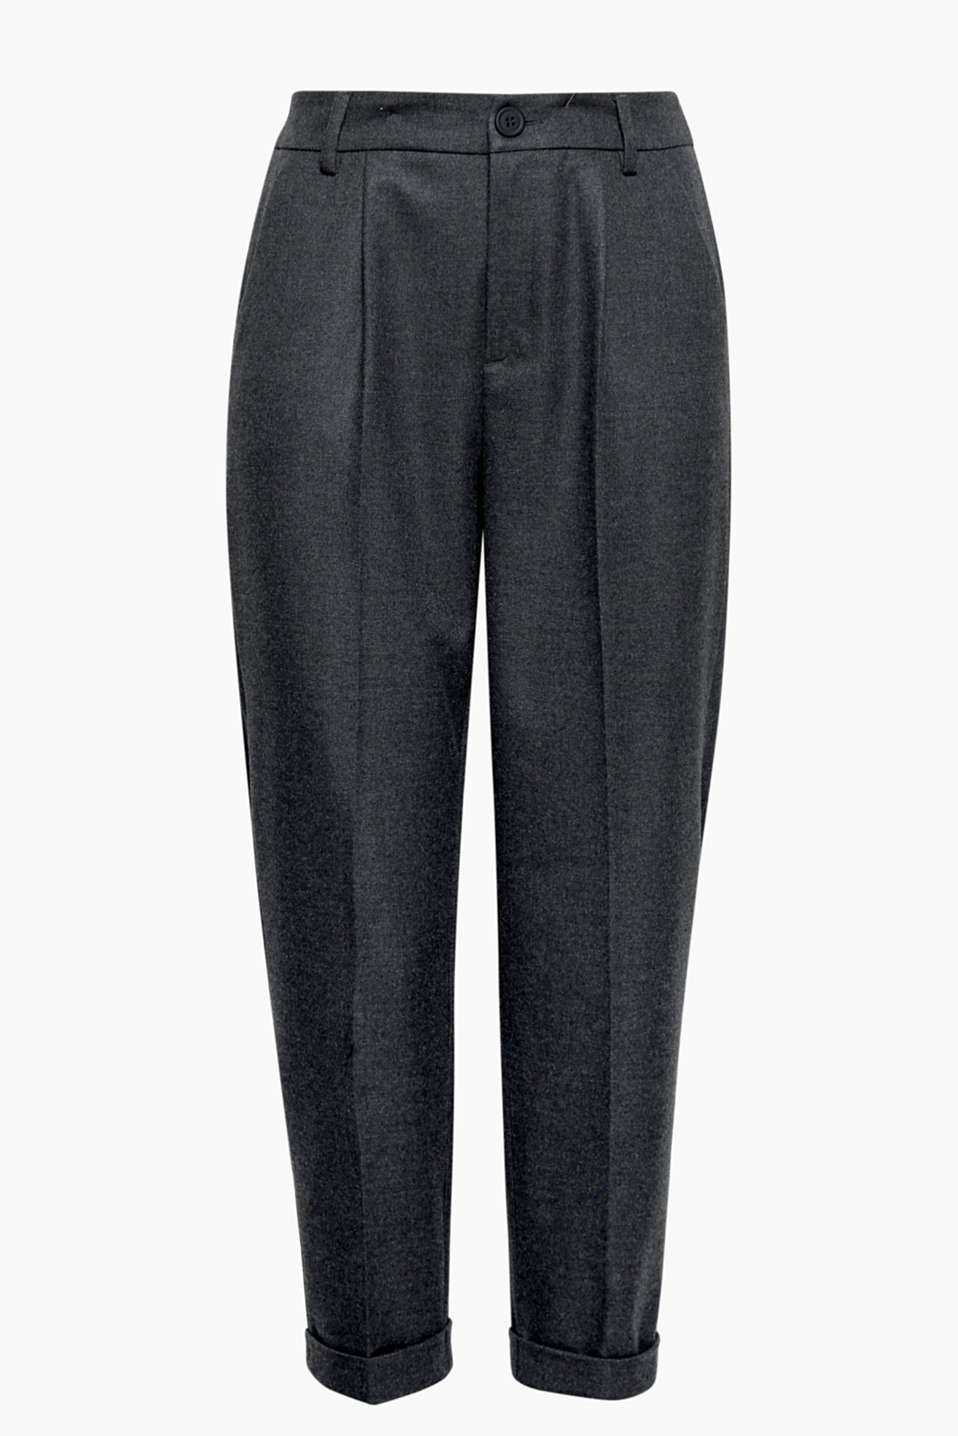 A partner in style for lots of looks: trendy cropped trousers in soft flannel with waist pleats and an elasticated waistband.